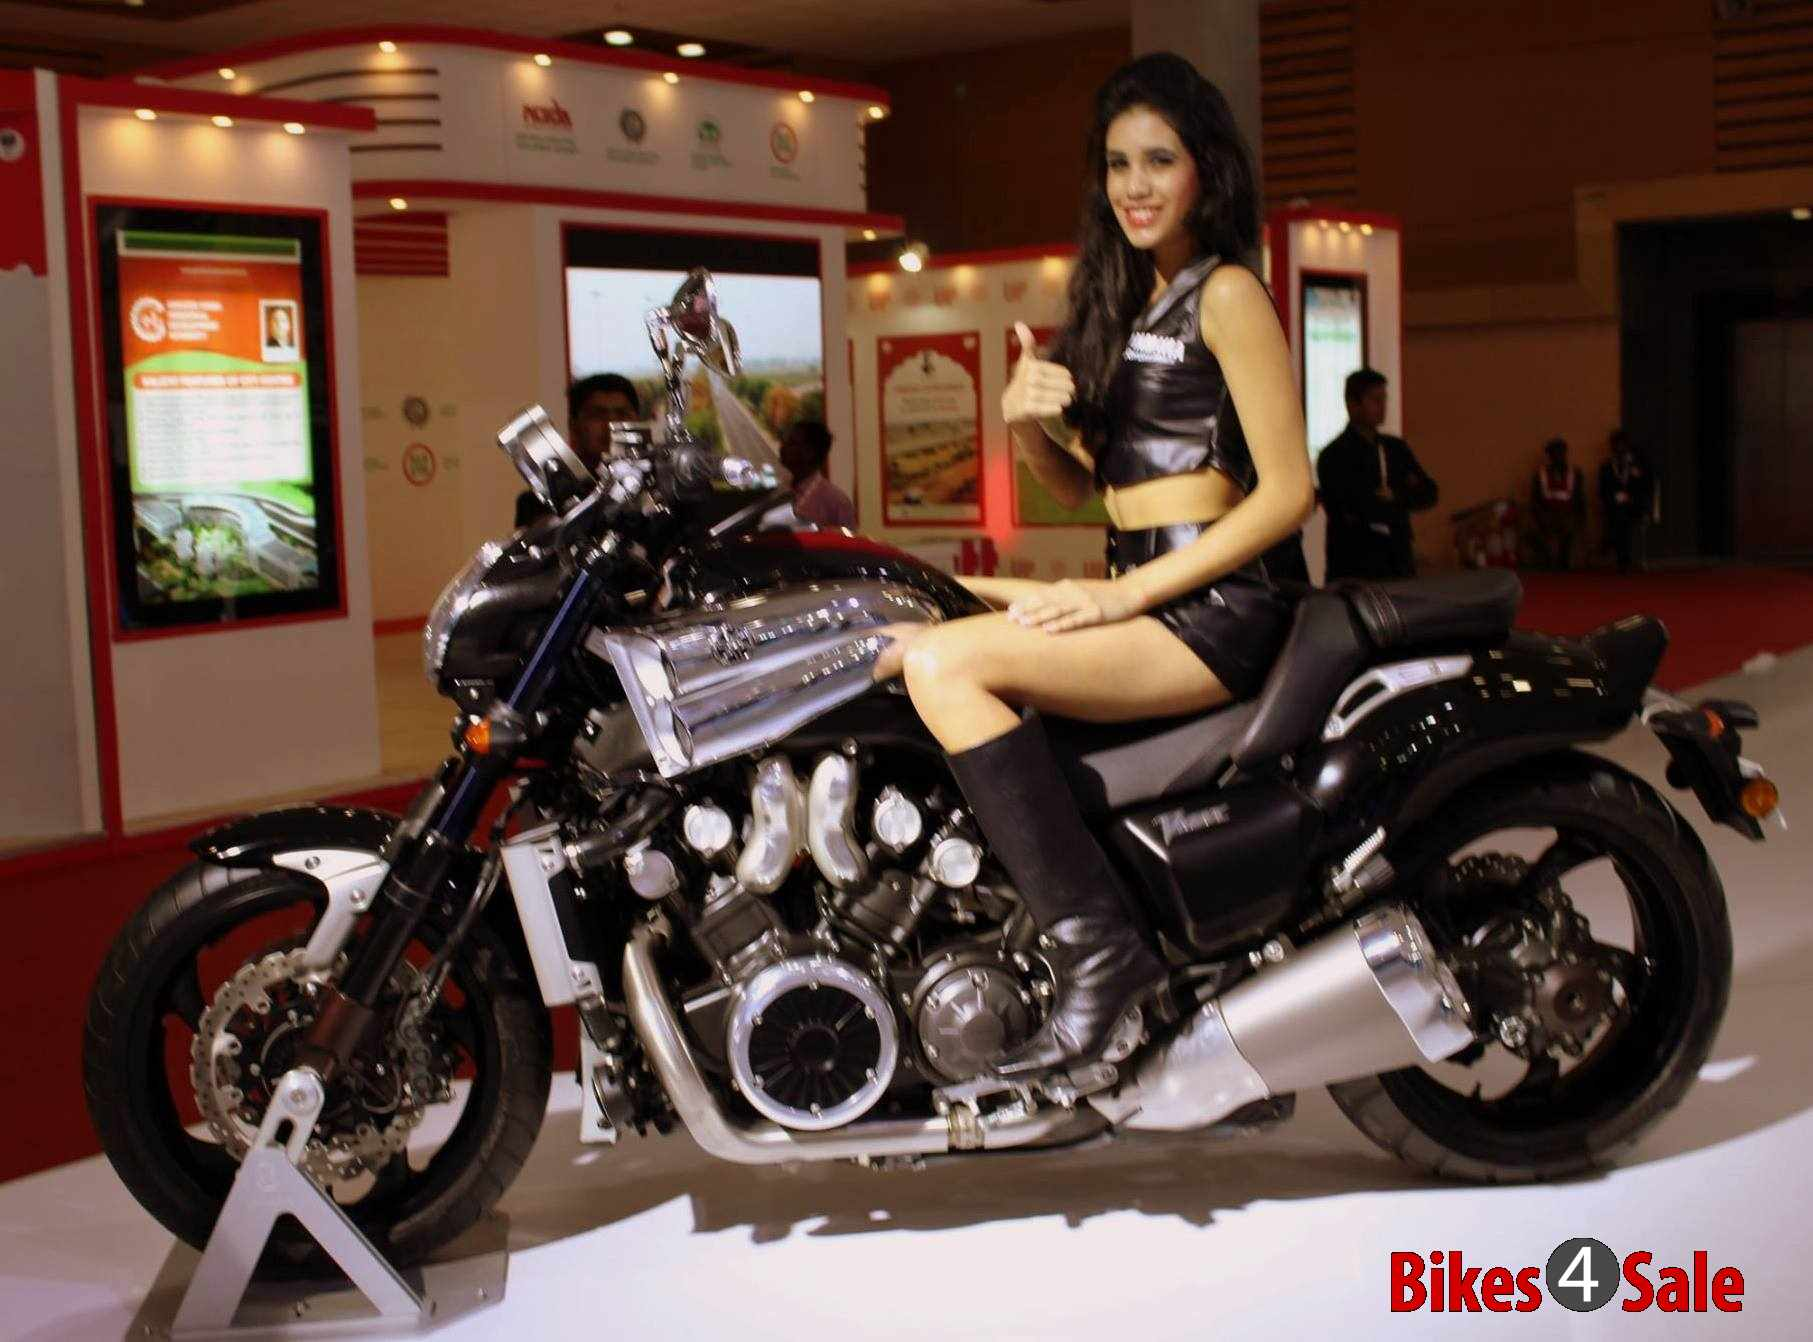 Electric Bikes For Sale >> Motorcycles and Scooters Unvieled in Auto Expo 2016 - Bikes4Sale